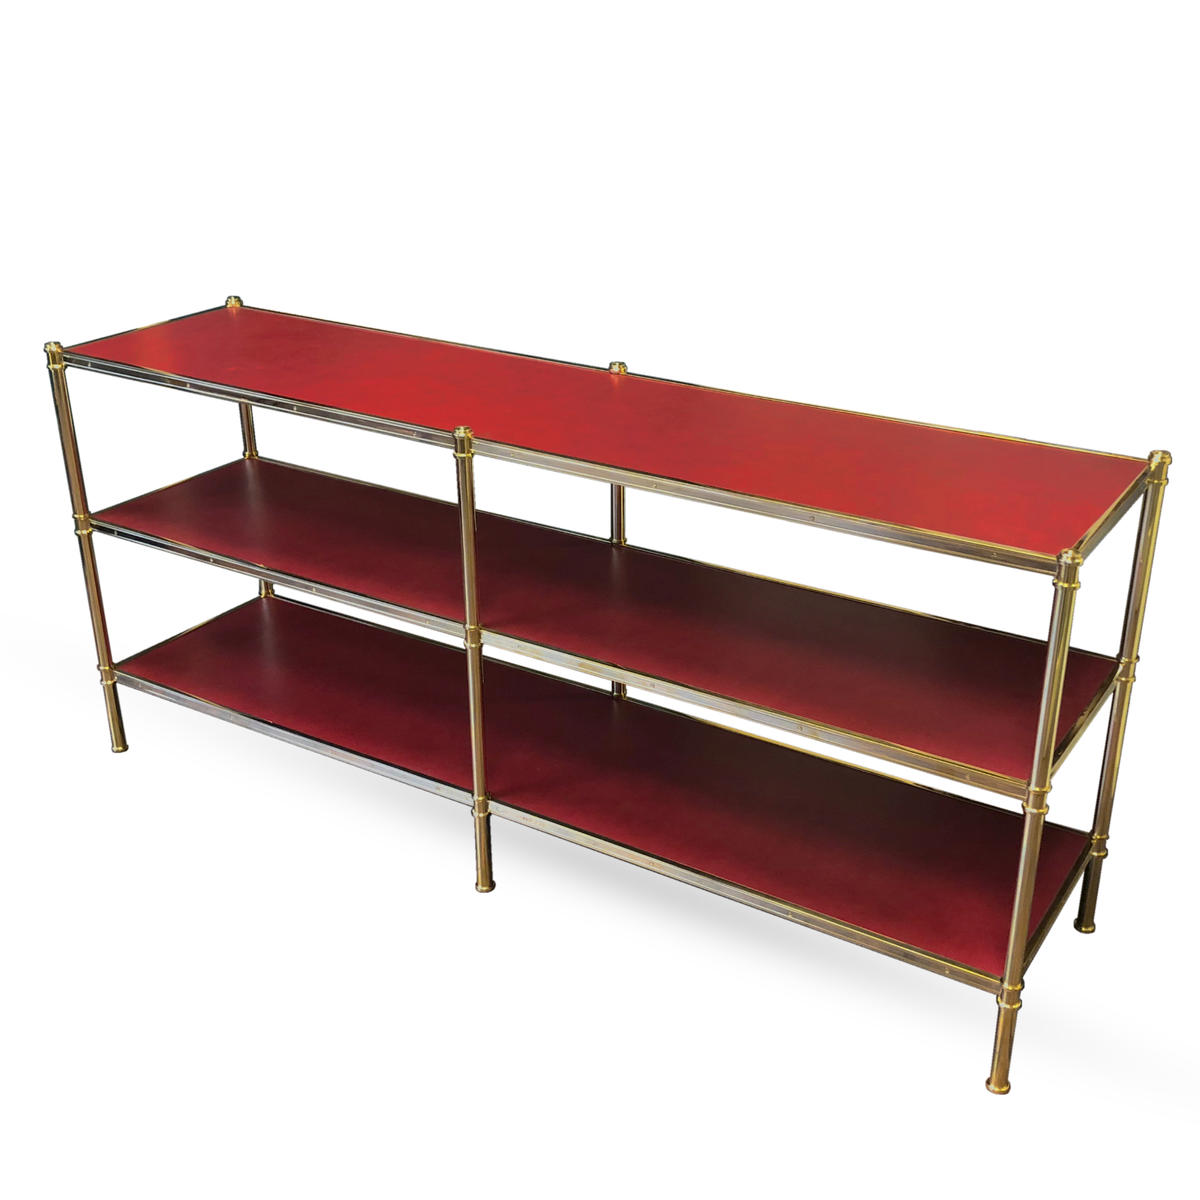 The Cole Porter sofa table from Victoria & Son